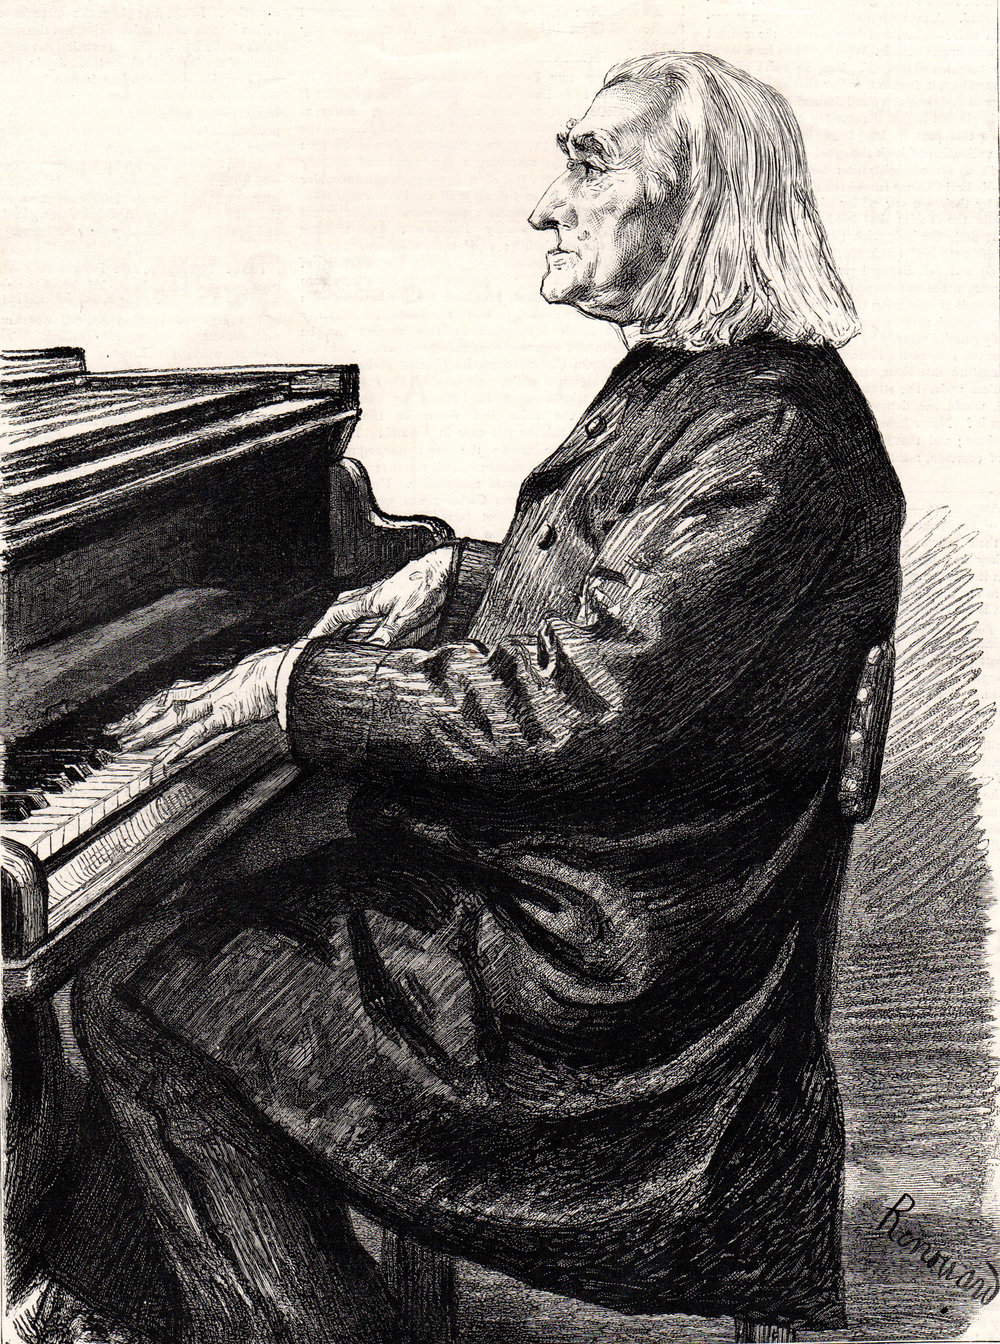 Miscellaneous Portraits and other music-related prints  Famous musicians, composers, and music-related subjects (mostly 19th century)